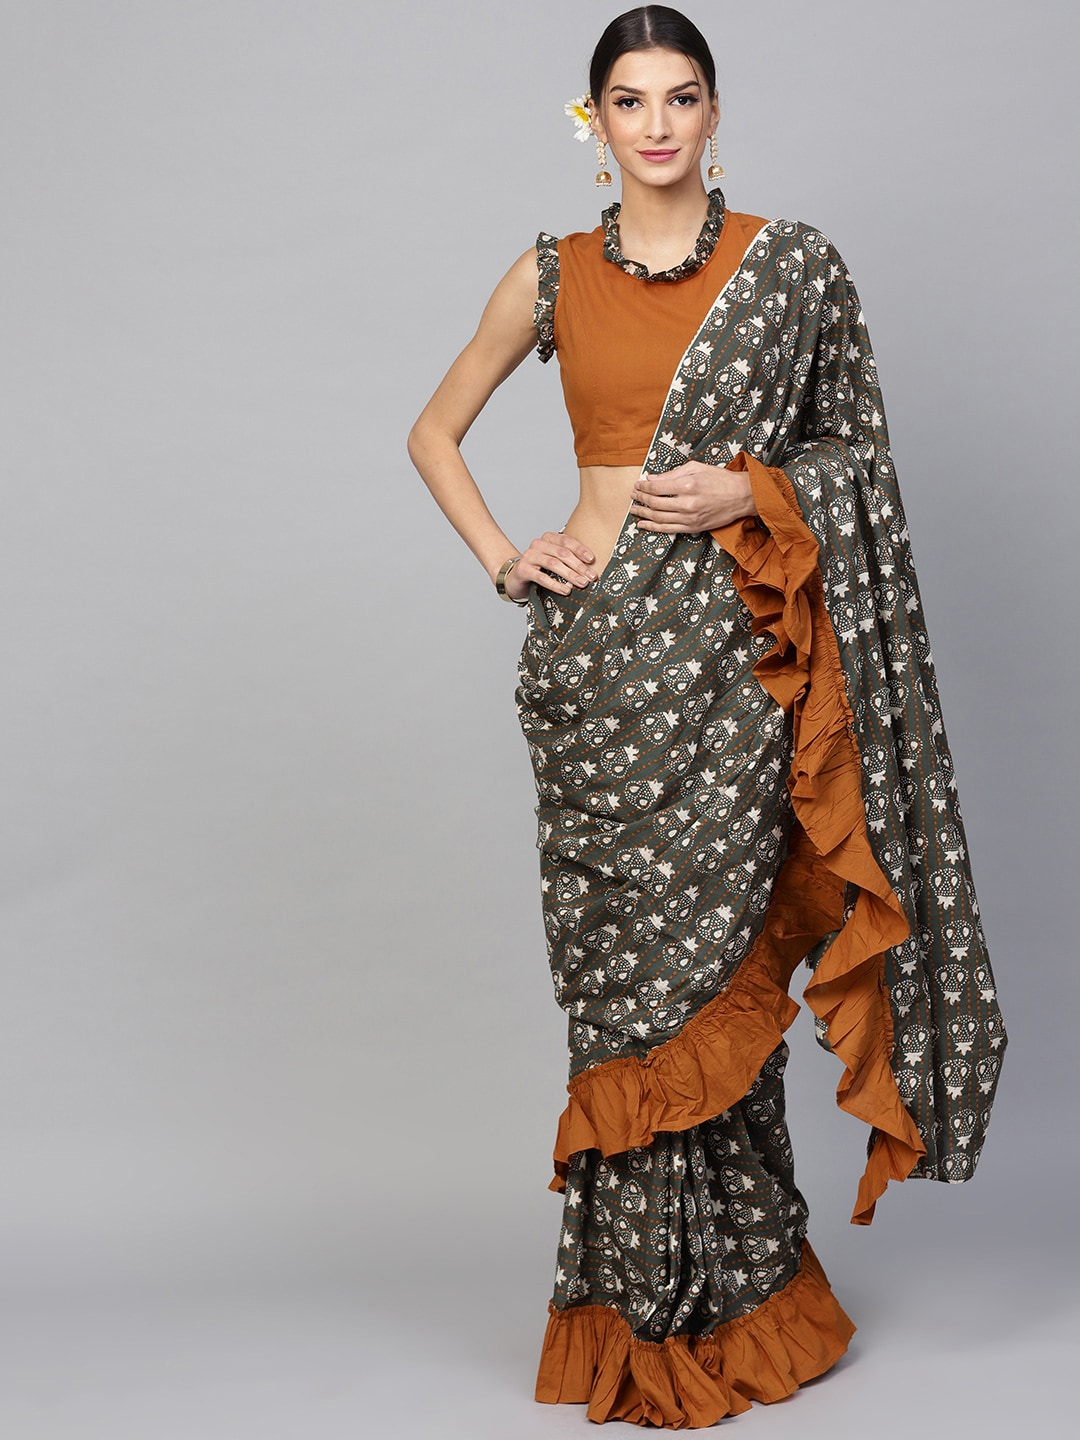 57011c5d0d6 Stitched Saree - Buy Pre-Stitched Sarees Online in India